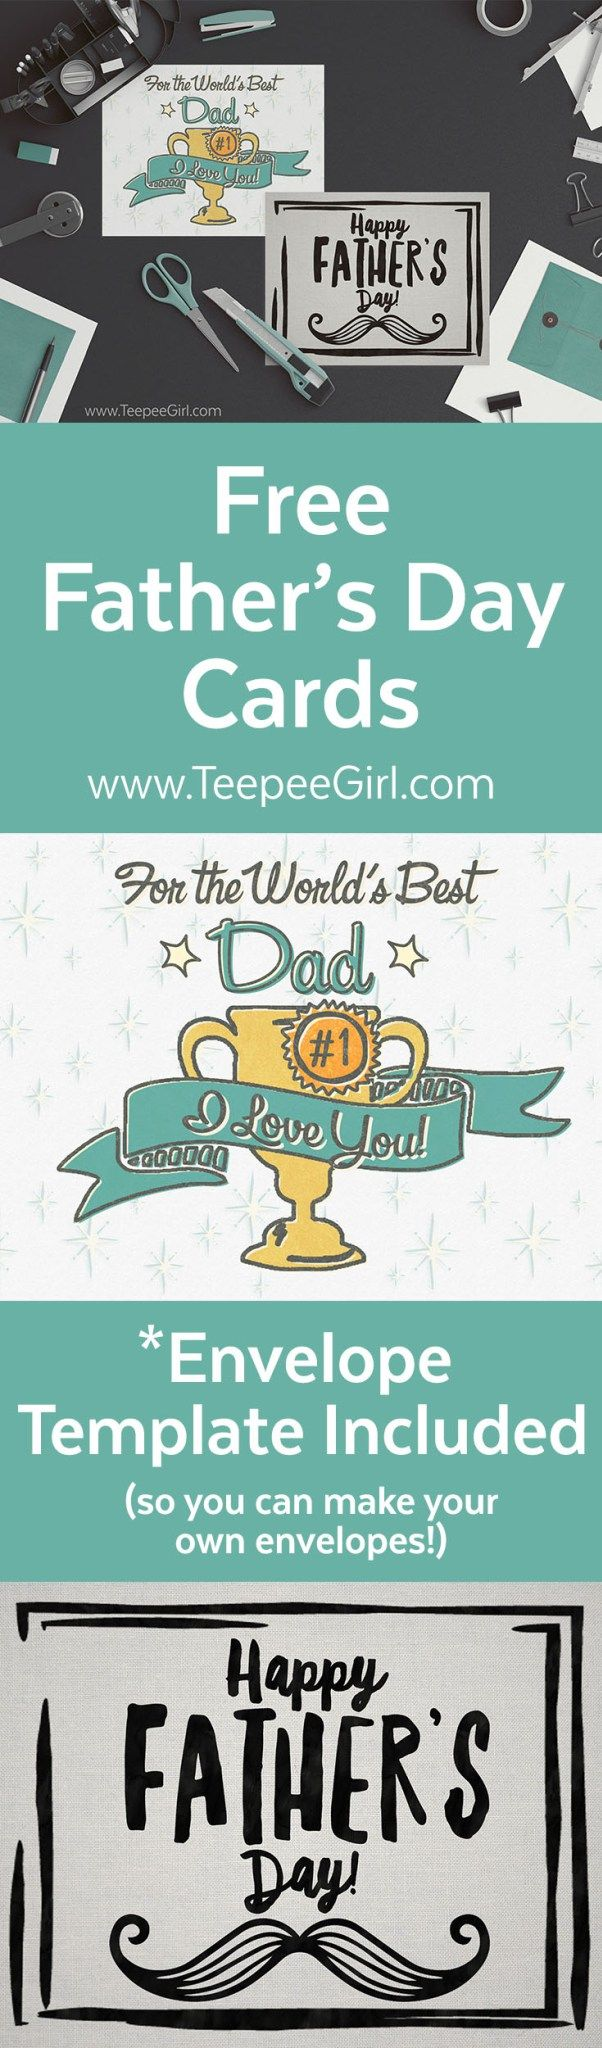 free father day cards online